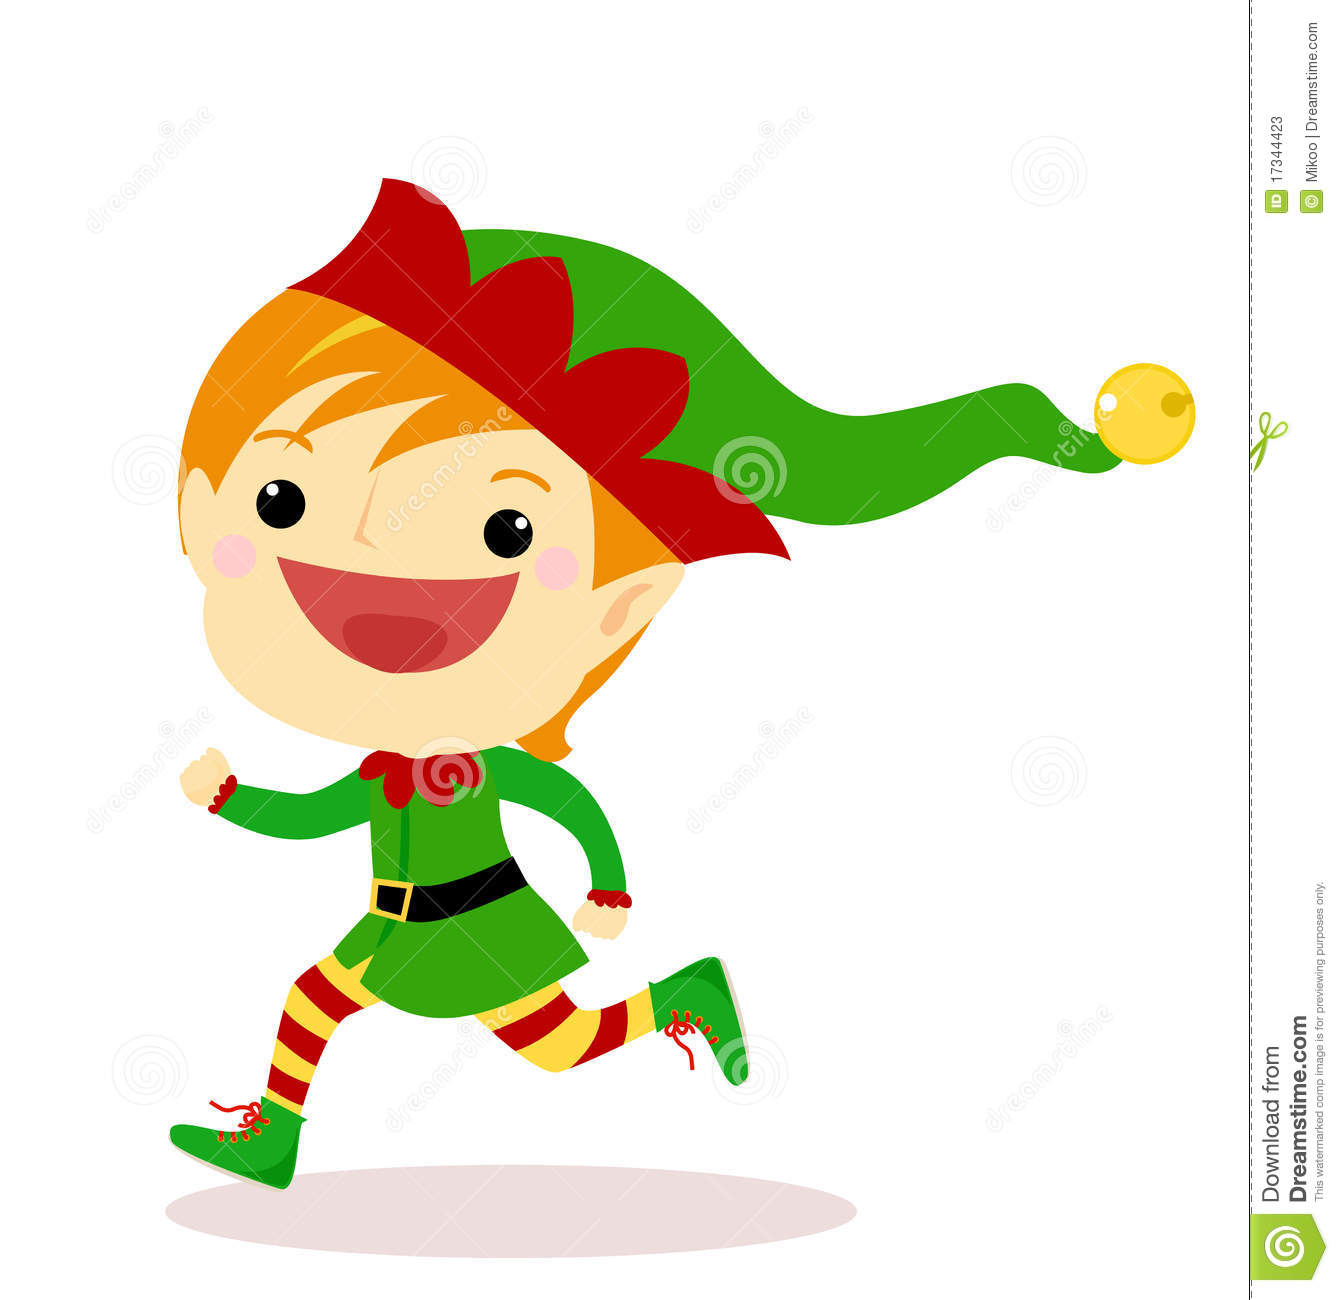 Elf clipart christmas presents Running Elf Clipart Download Running